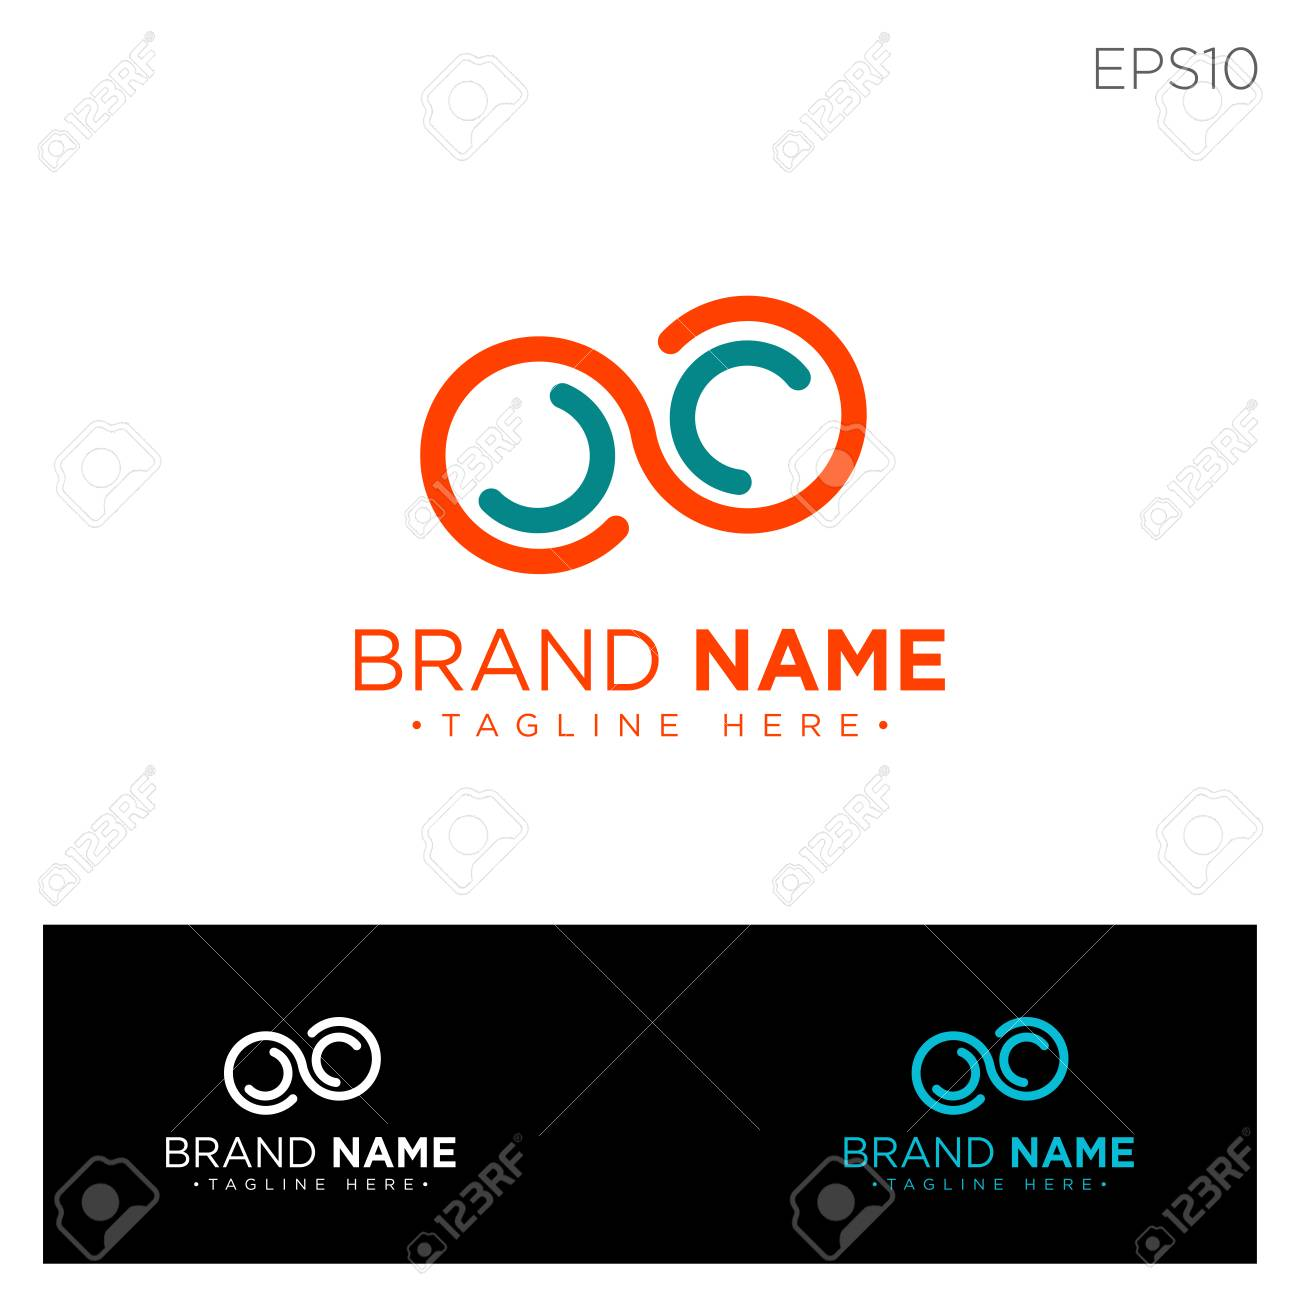 Infinity Monogram Initial C Cc C Logo Template Black Color Royalty Free Cliparts Vectors And Stock Illustration Image 123199686